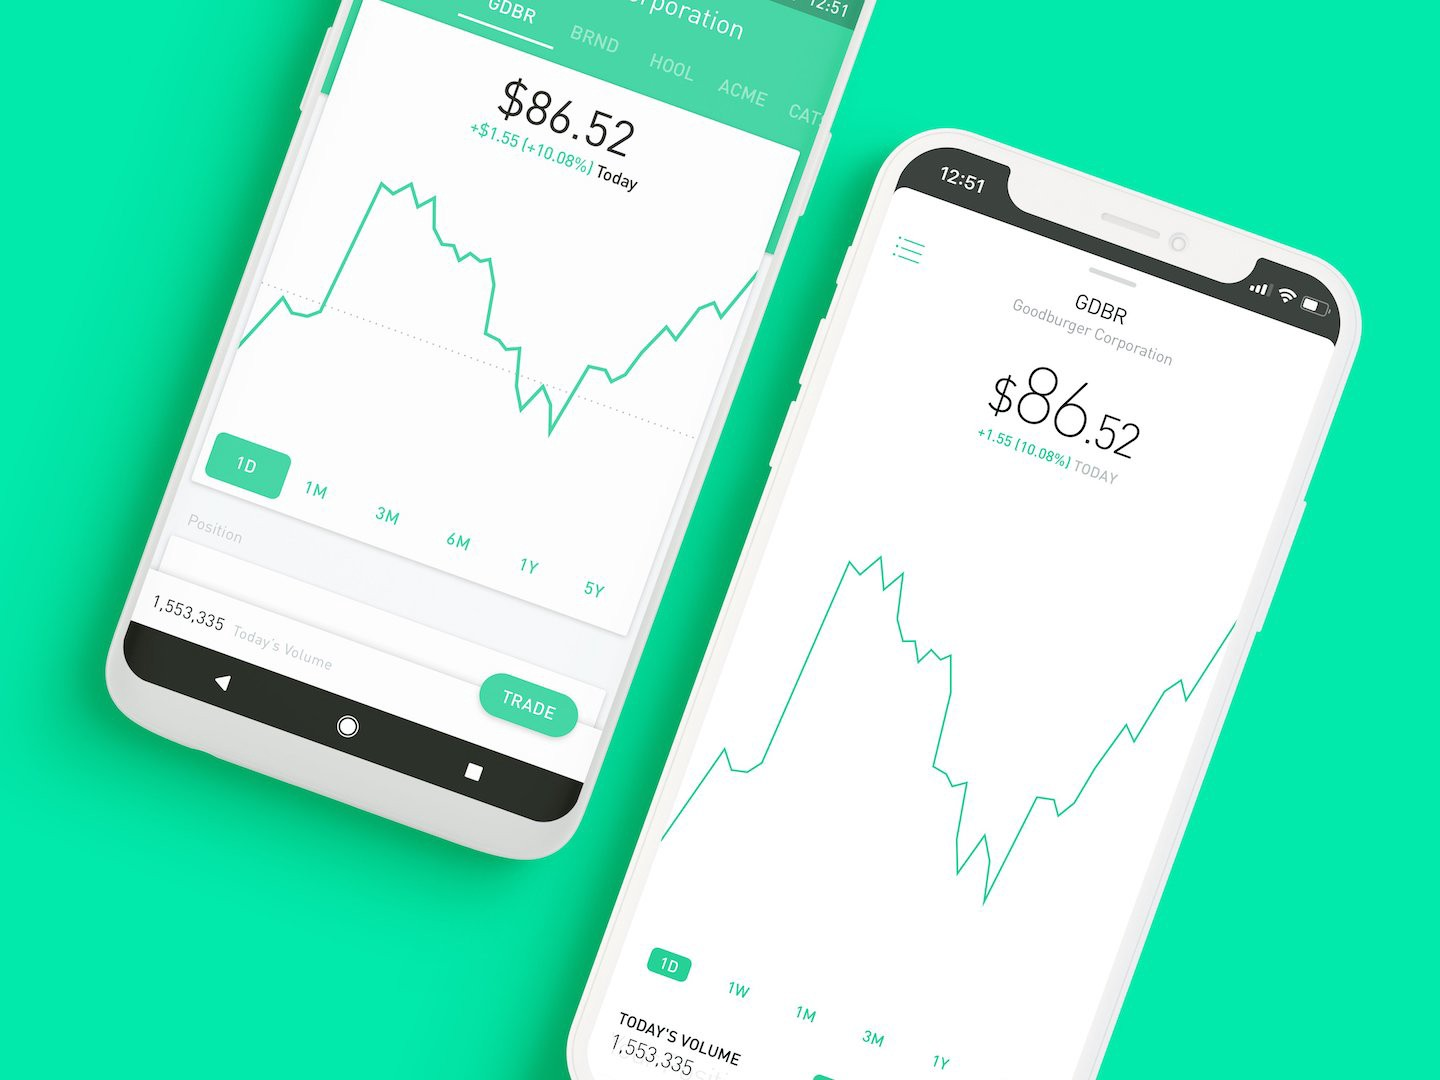 Robinhood To Buy Stock